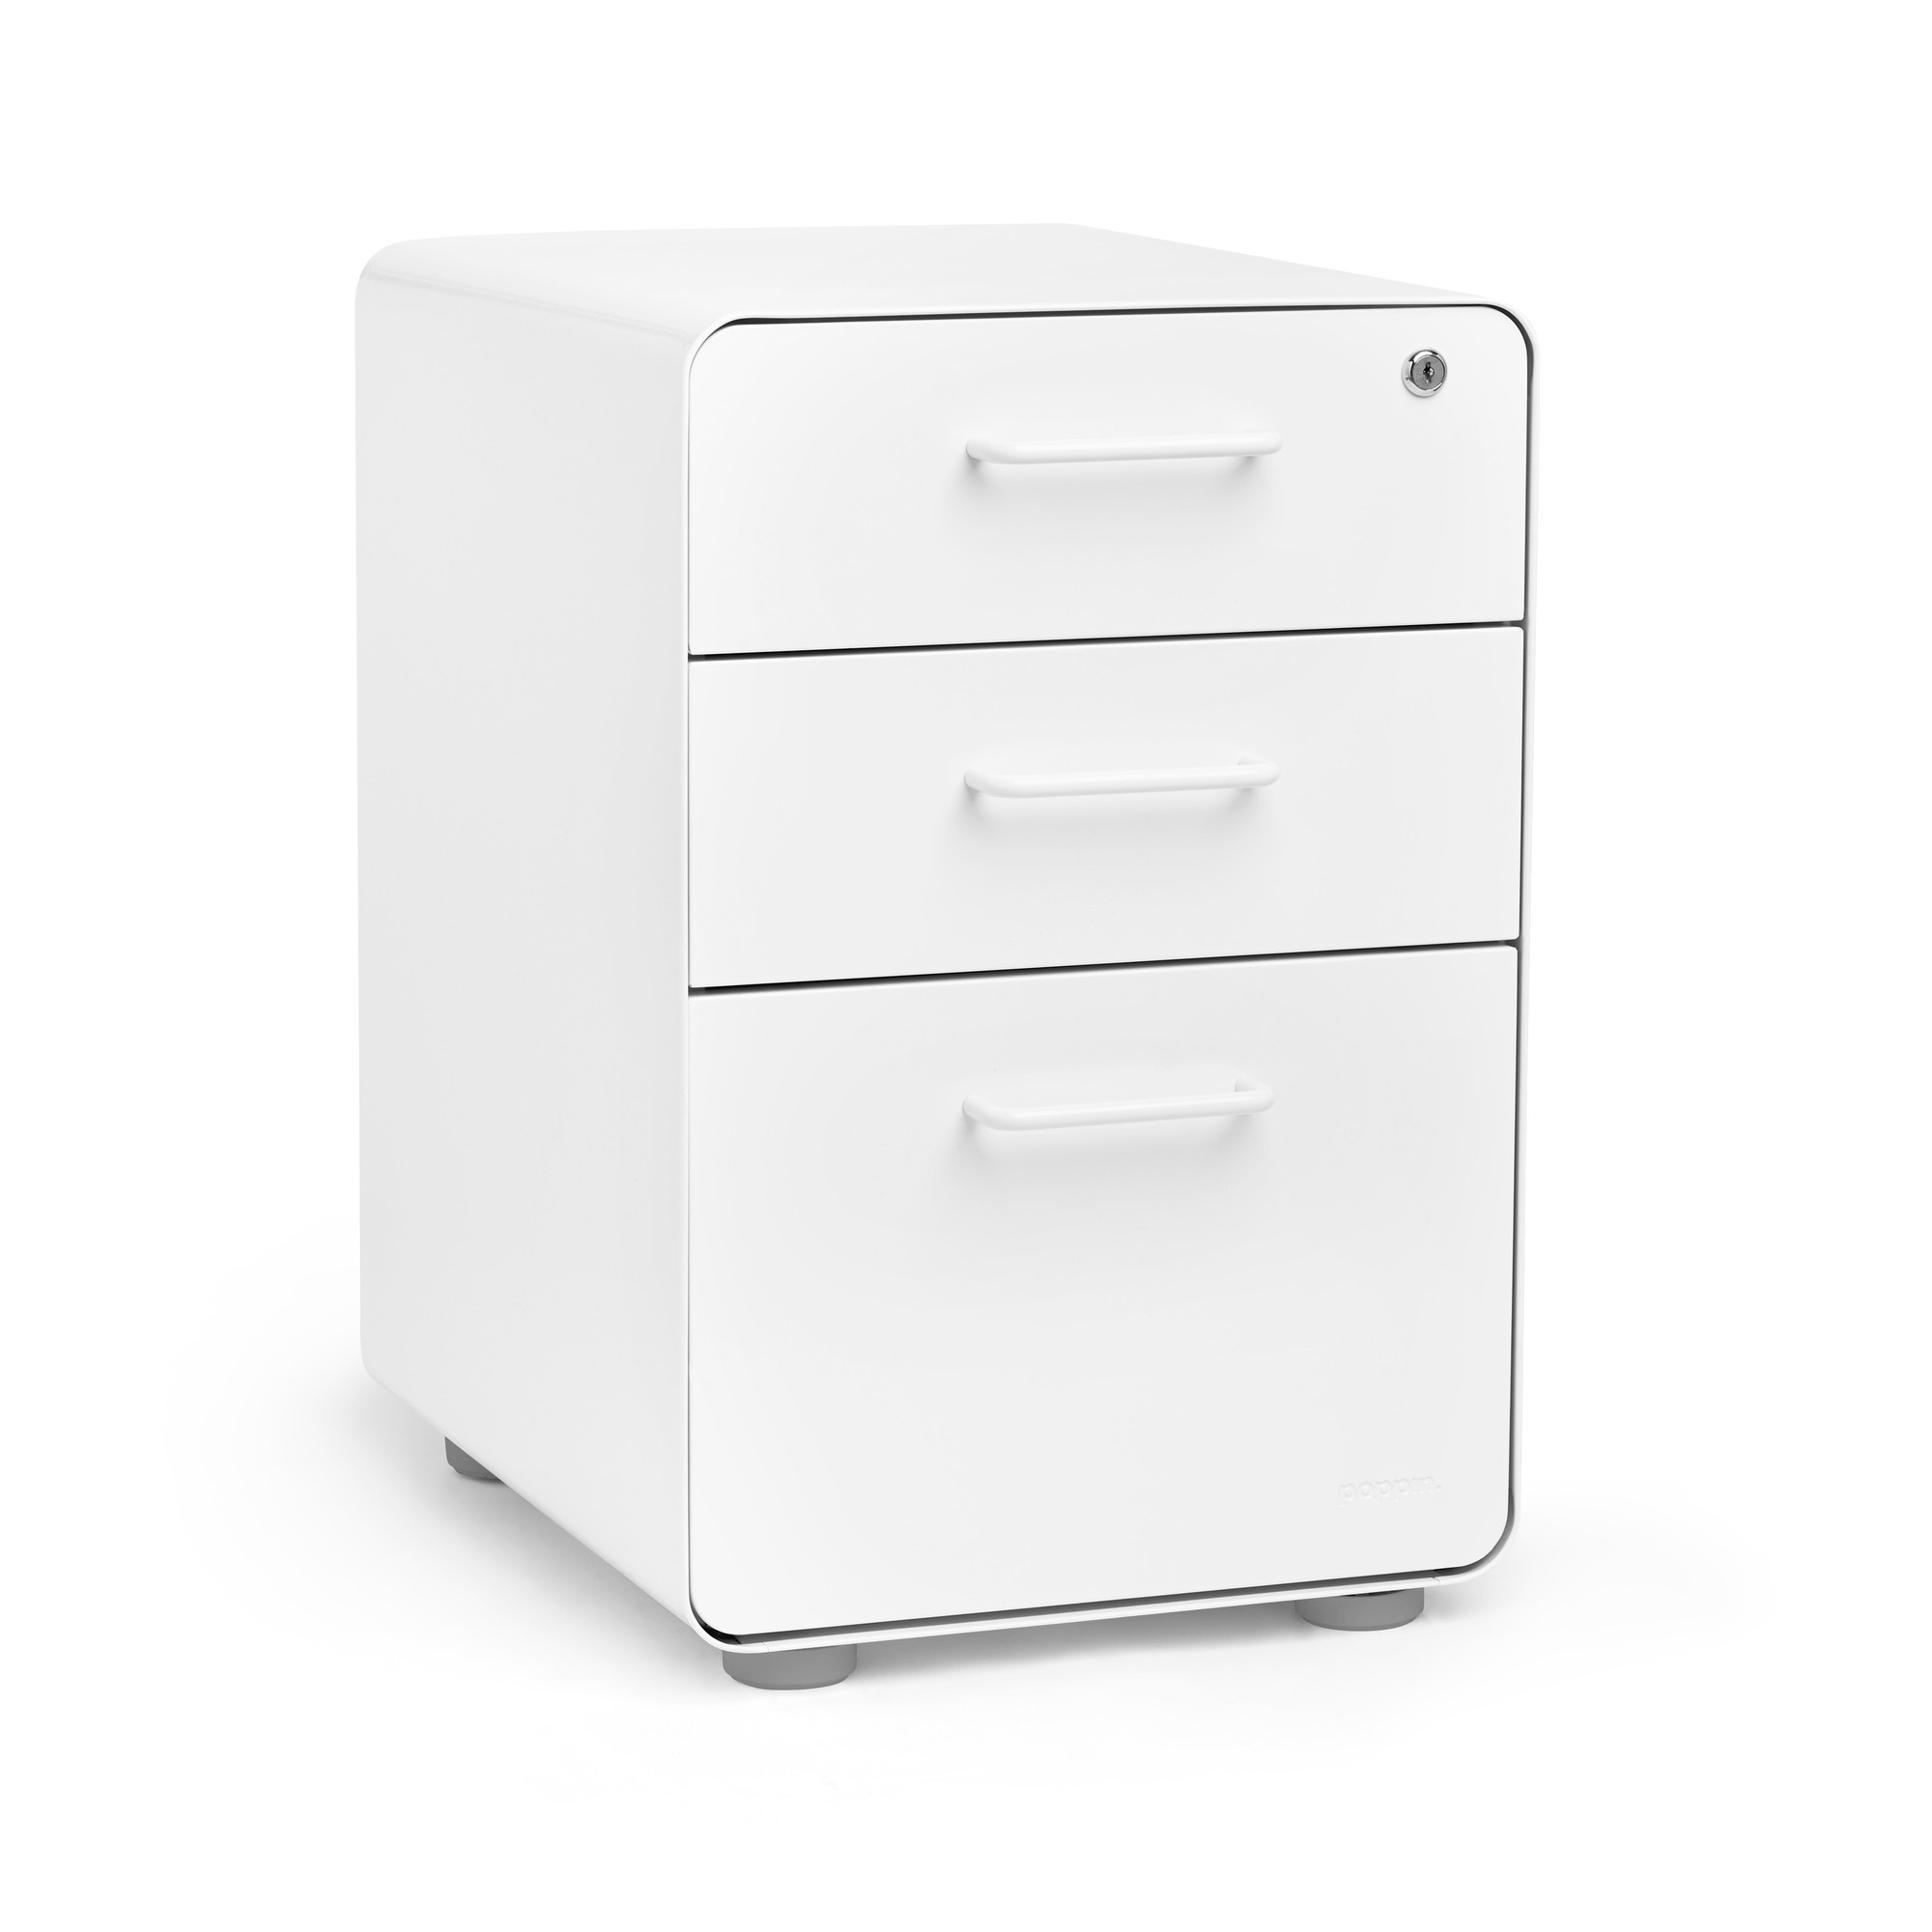 cabinet. White Stow 3-Drawer File Cabinet,White,hi-res Cabinet